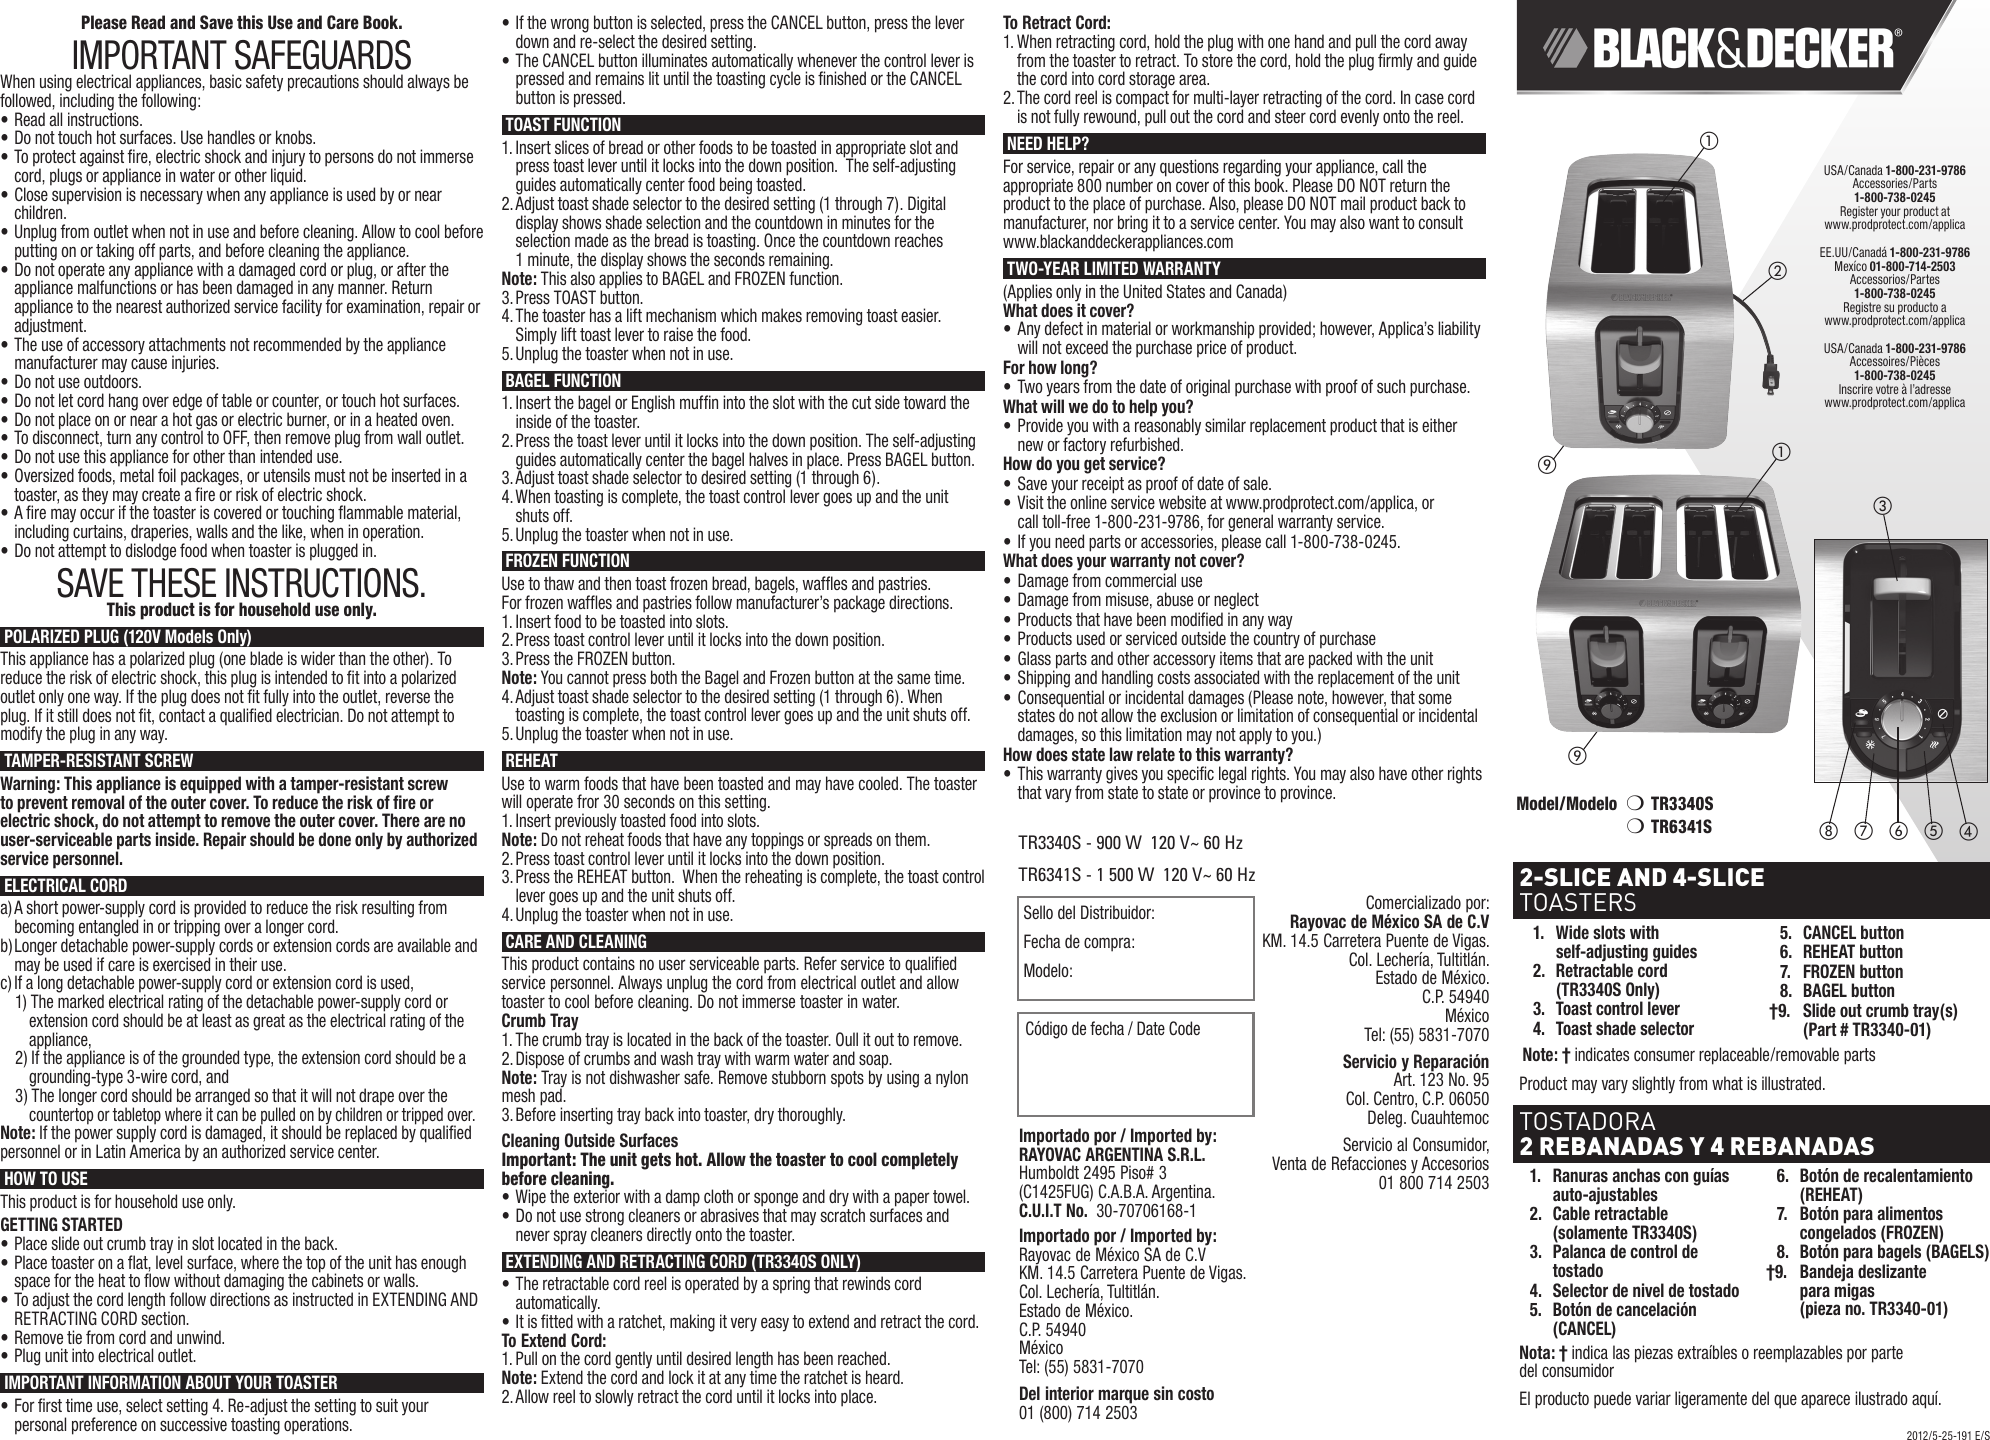 Black And Decker 2 Slice Toaster Manual